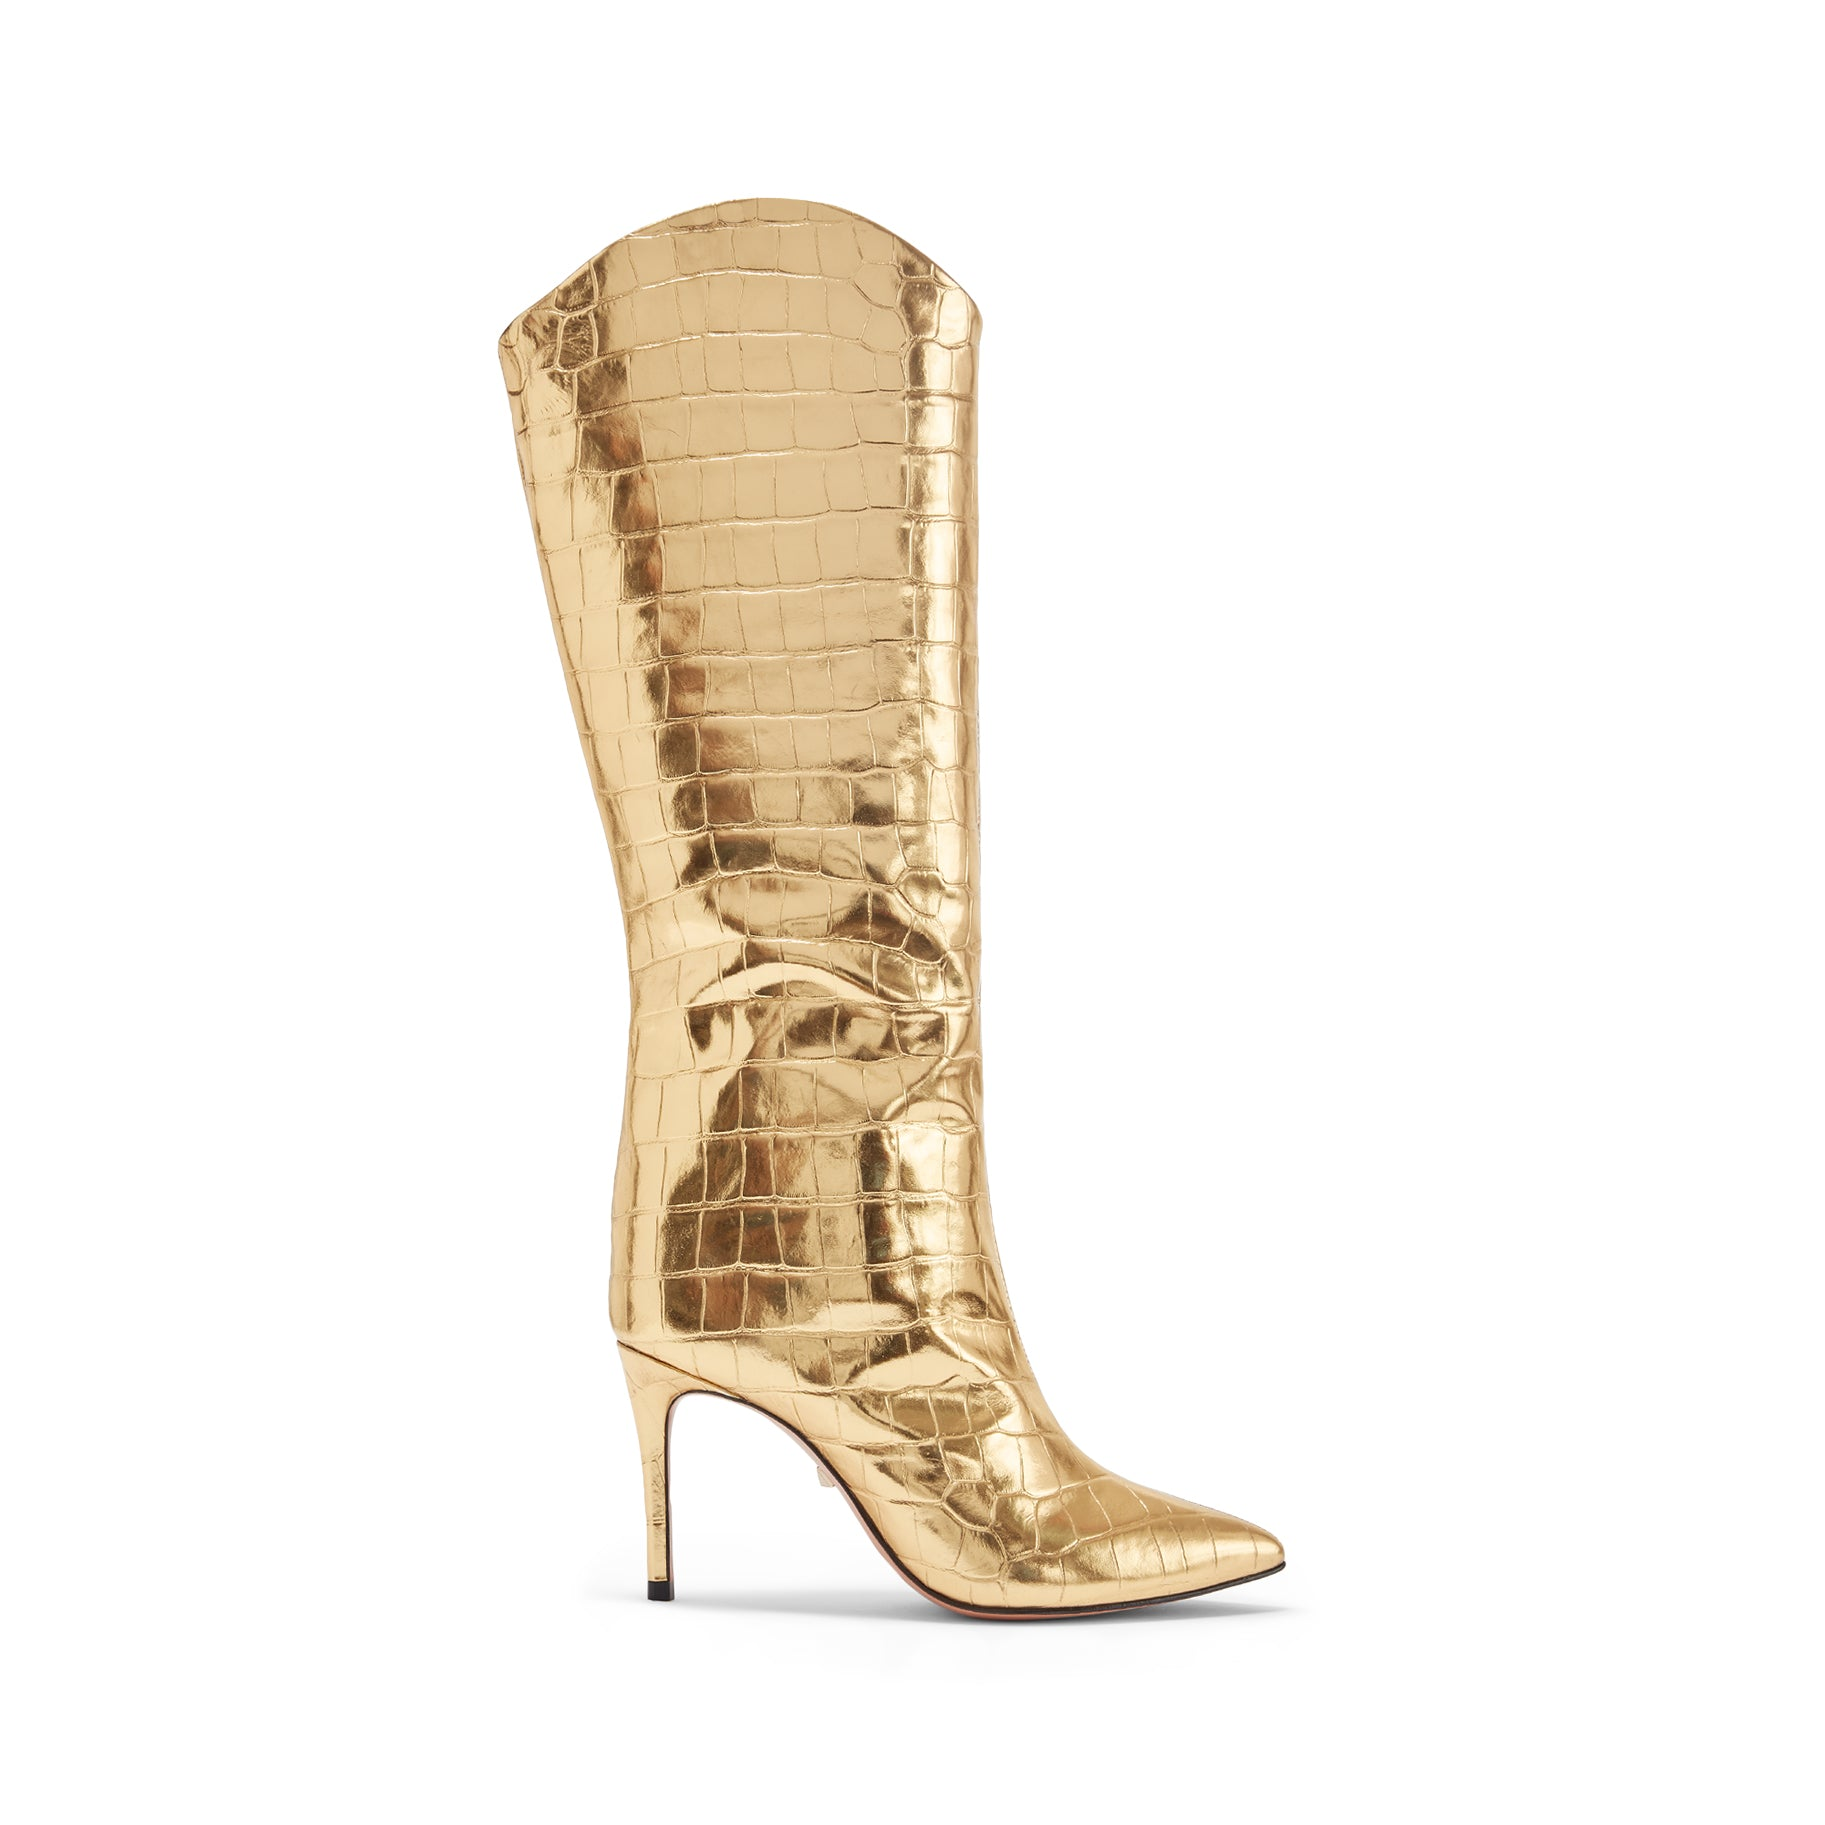 Maryana Boots Ouro Gold Crocodile Embossed Leather